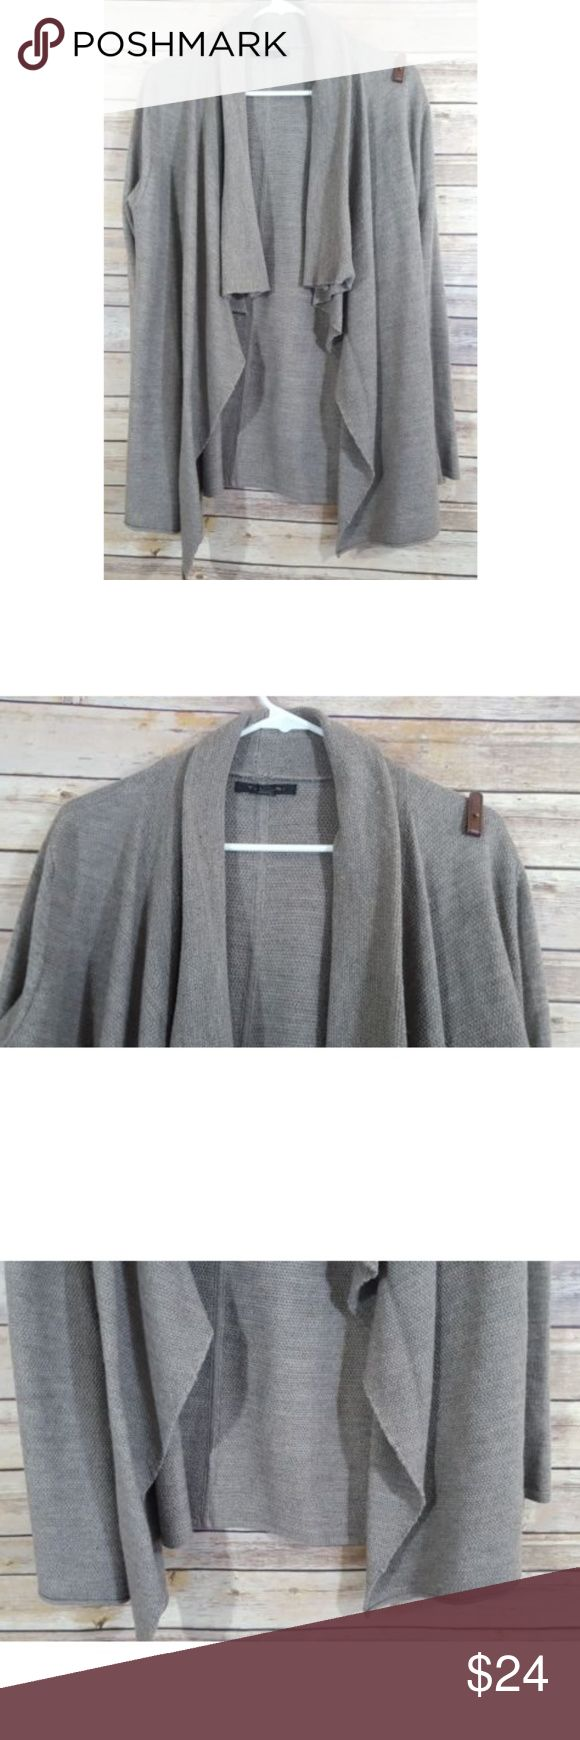 TAHARI Draped Open Front Cardigan Sweater Great used condition  Up for sale is a light brown draped open front cardigan sweater. 50% Merino Wool 50% Acrylic  Measurements  Across the chest-22  Length-28  Sleeves-24 Tahari Sweaters Cardigans